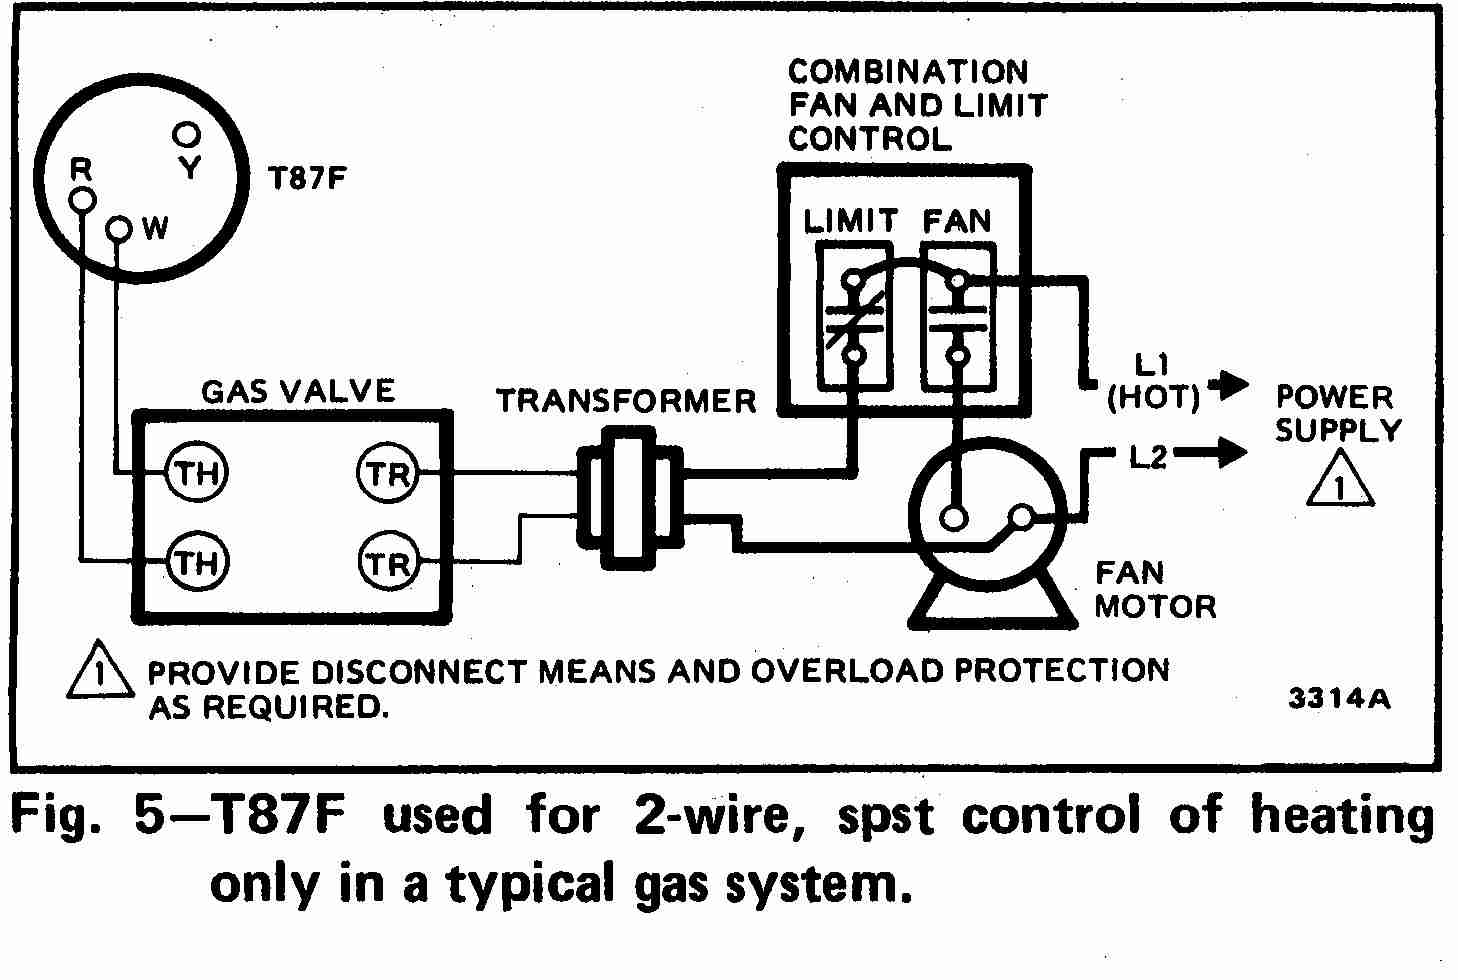 TT_T87F_0002_2Wg_DJF guide to wiring connections for room thermostats thermostat wiring schematic at n-0.co